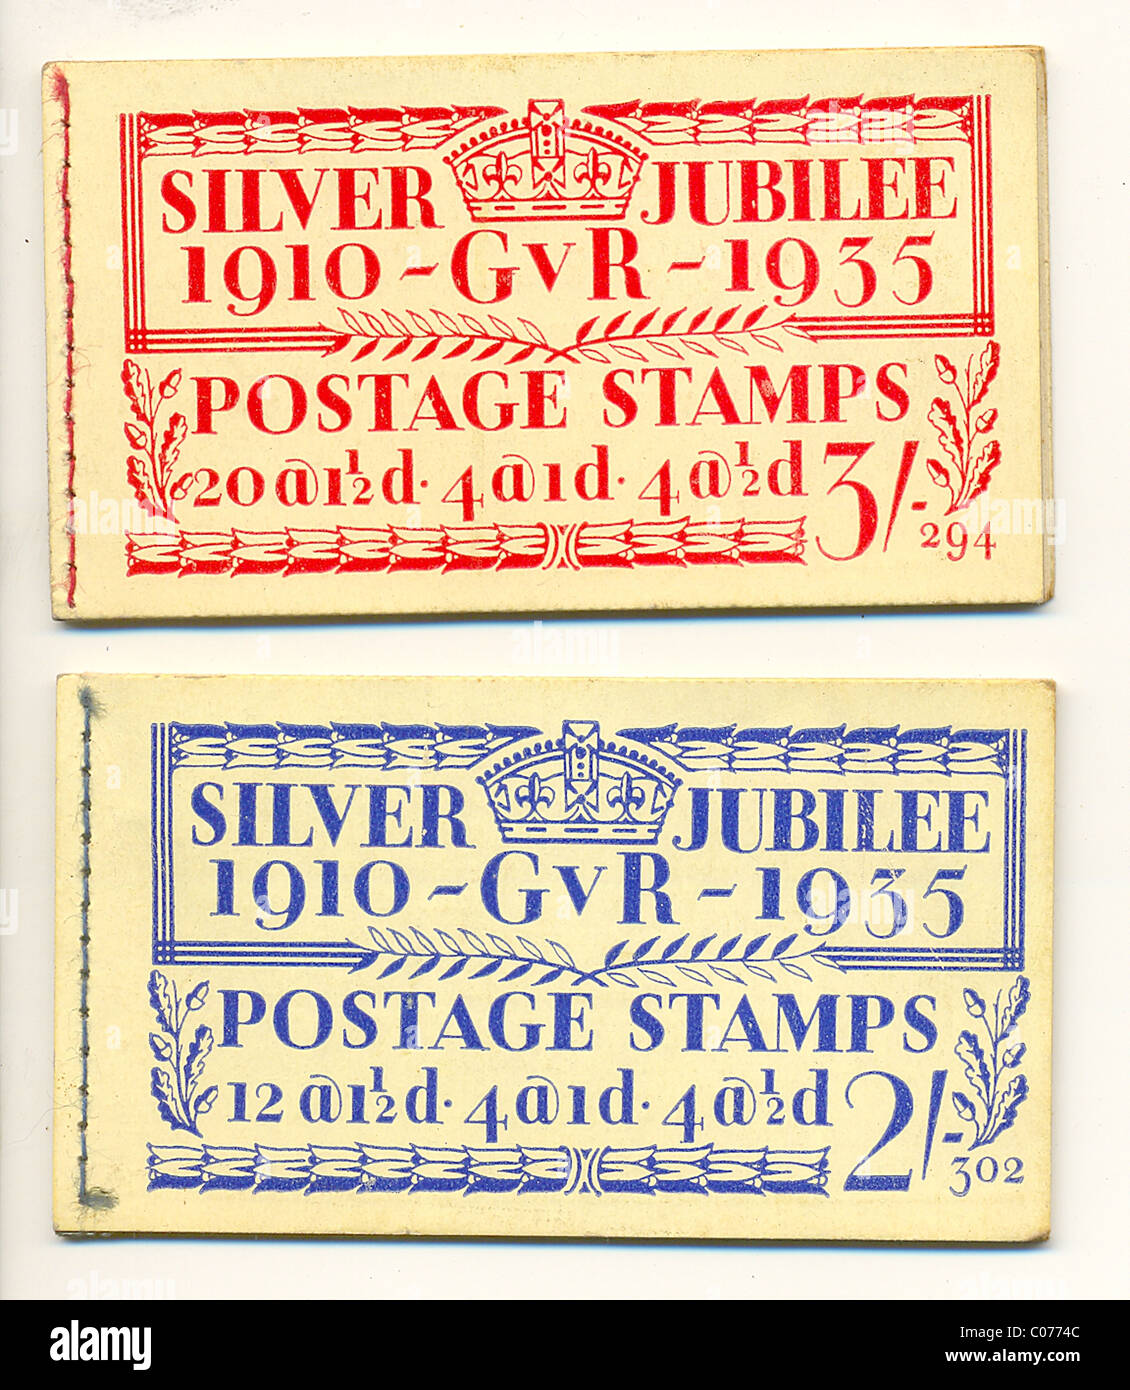 Silver Jubilee postage stamp booklets - Stock Image